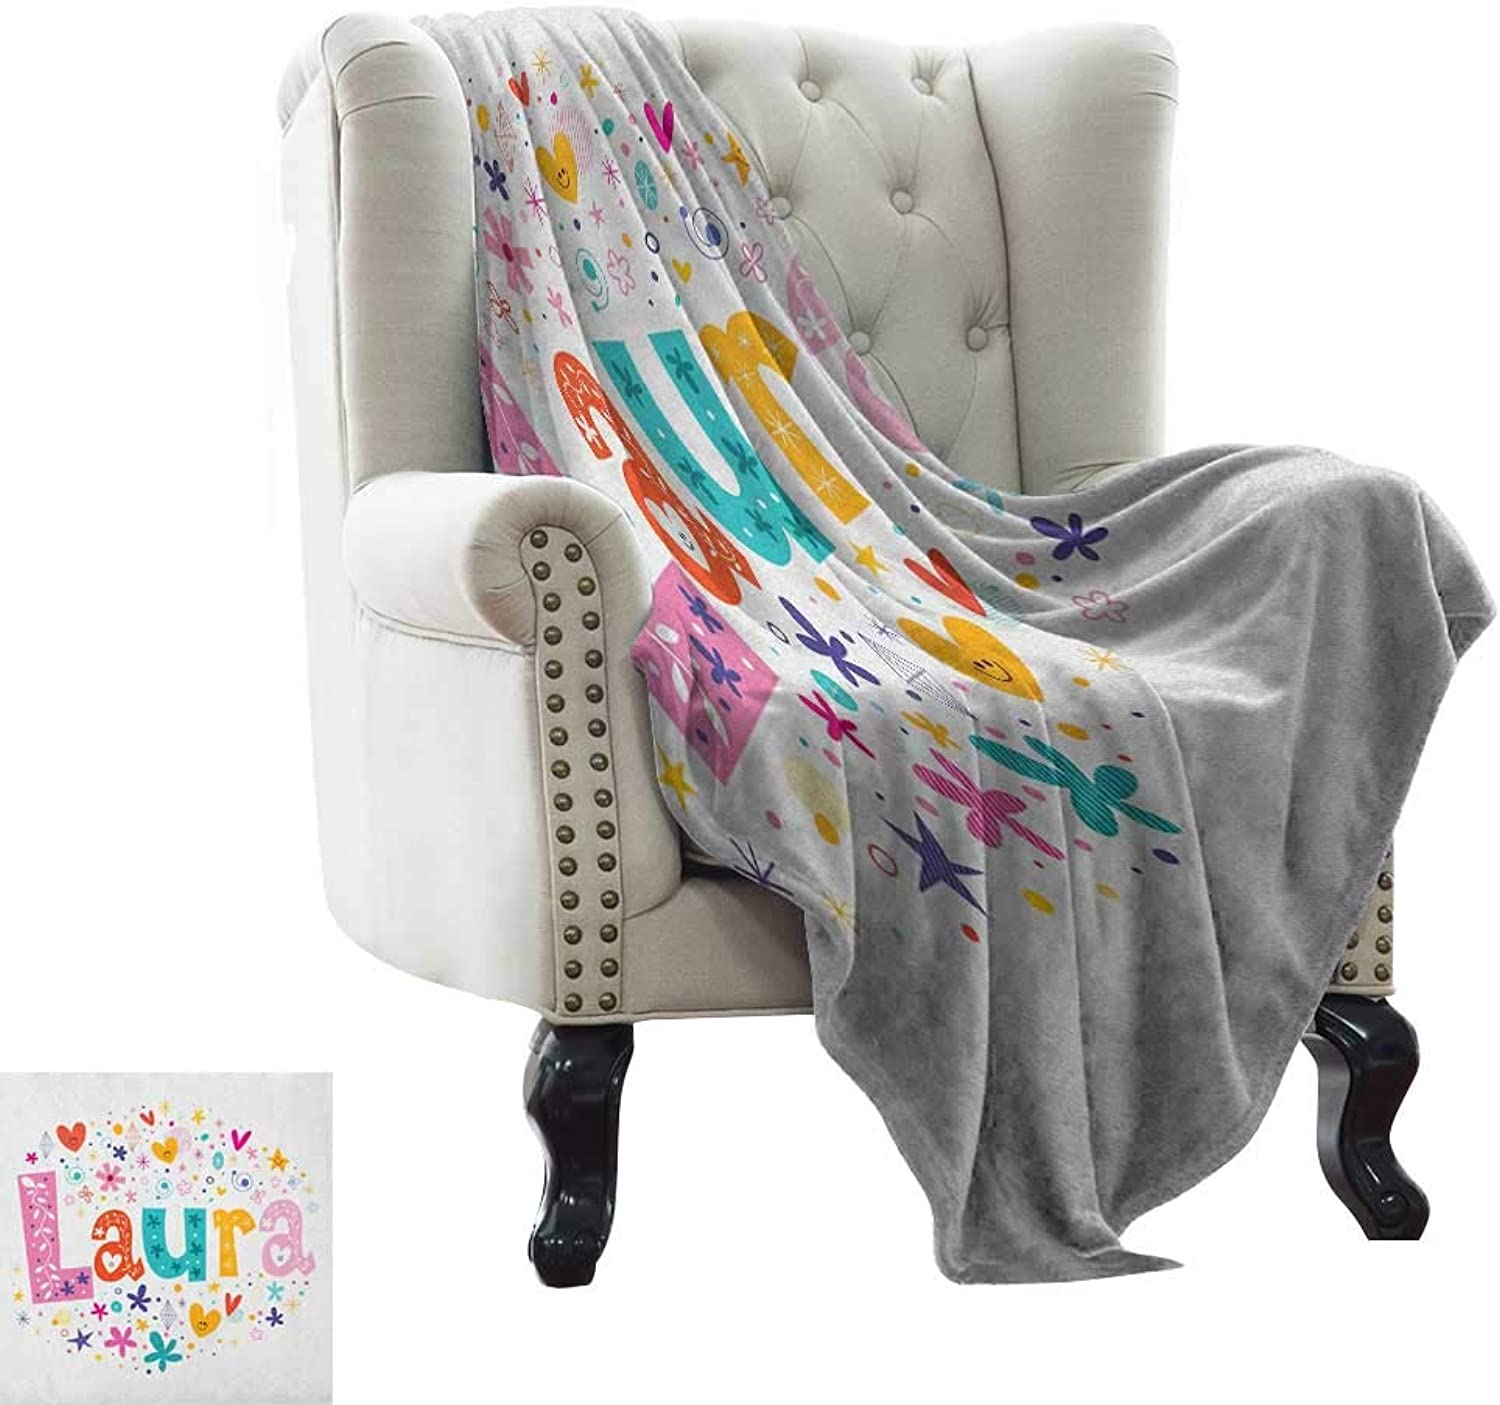 Warmfamily Laura,Throw Blanket,Baby Girl Name with Vintage Doodle Style Flowers and Stars colorful Illustration 60 x36 ,Super Soft and Comfortable,Suitable for Sofas,Chairs,beds